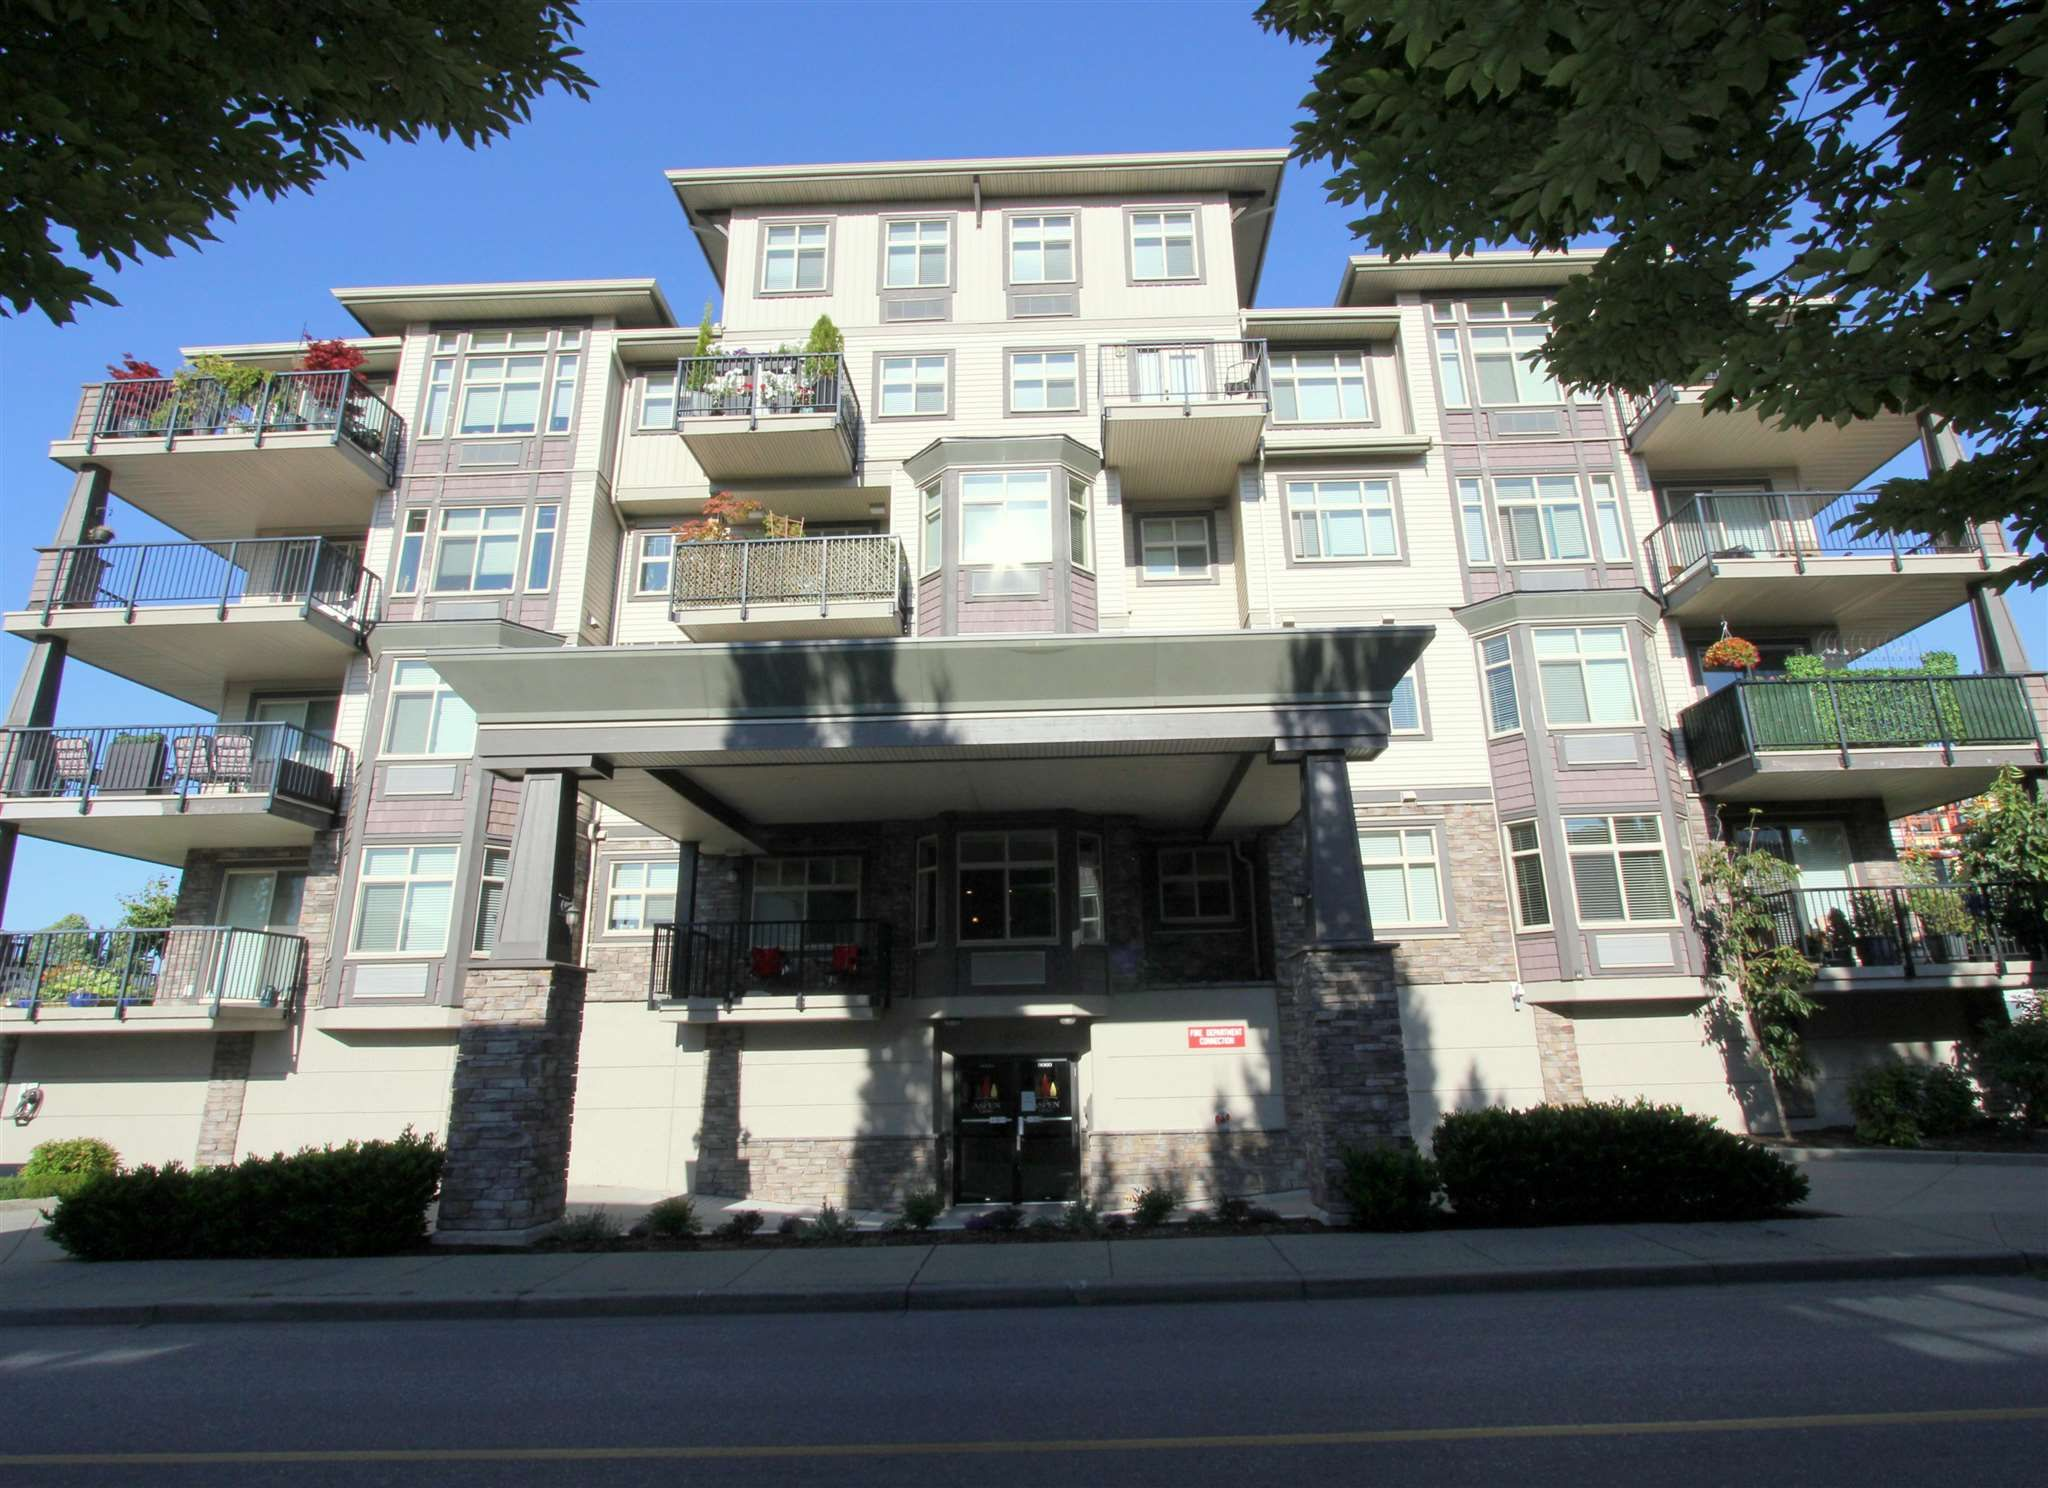 """Main Photo: 302 9060 BIRCH Street in Chilliwack: Chilliwack W Young-Well Condo for sale in """"ASPEN GROVE"""" : MLS®# R2603096"""